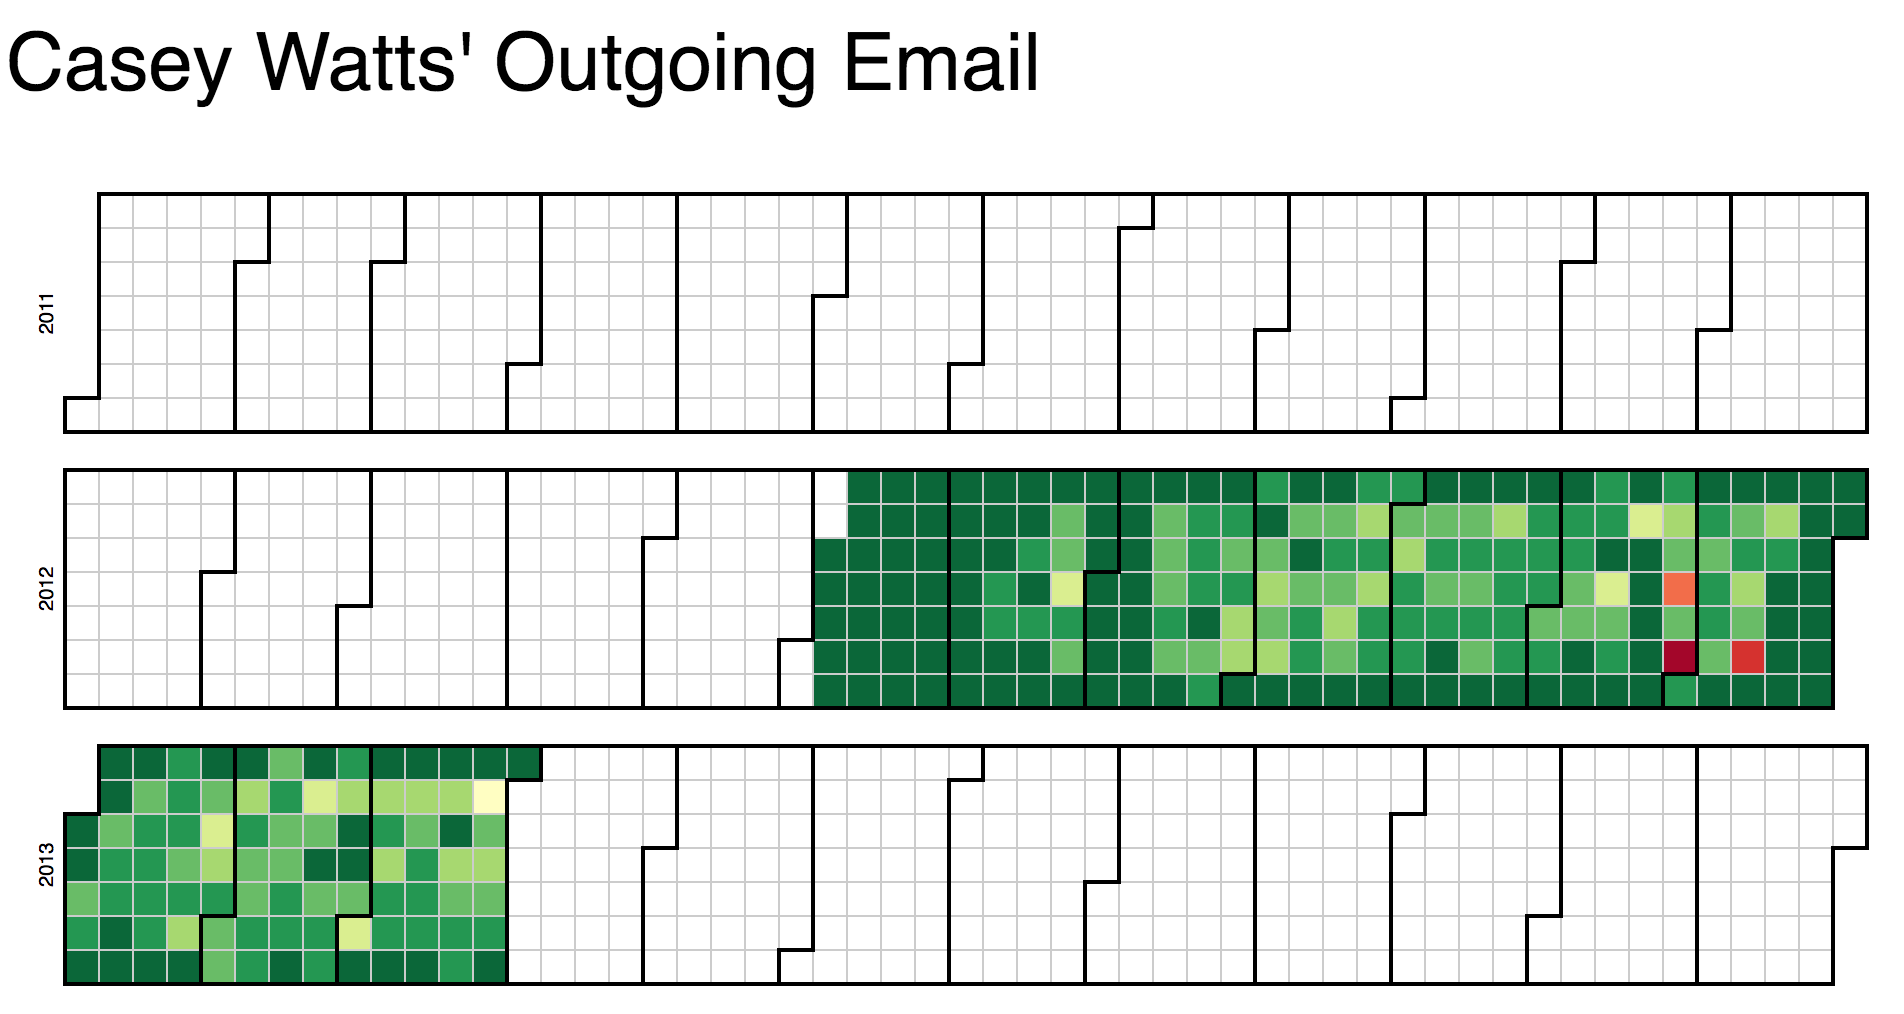 Outgoing Email Visualization